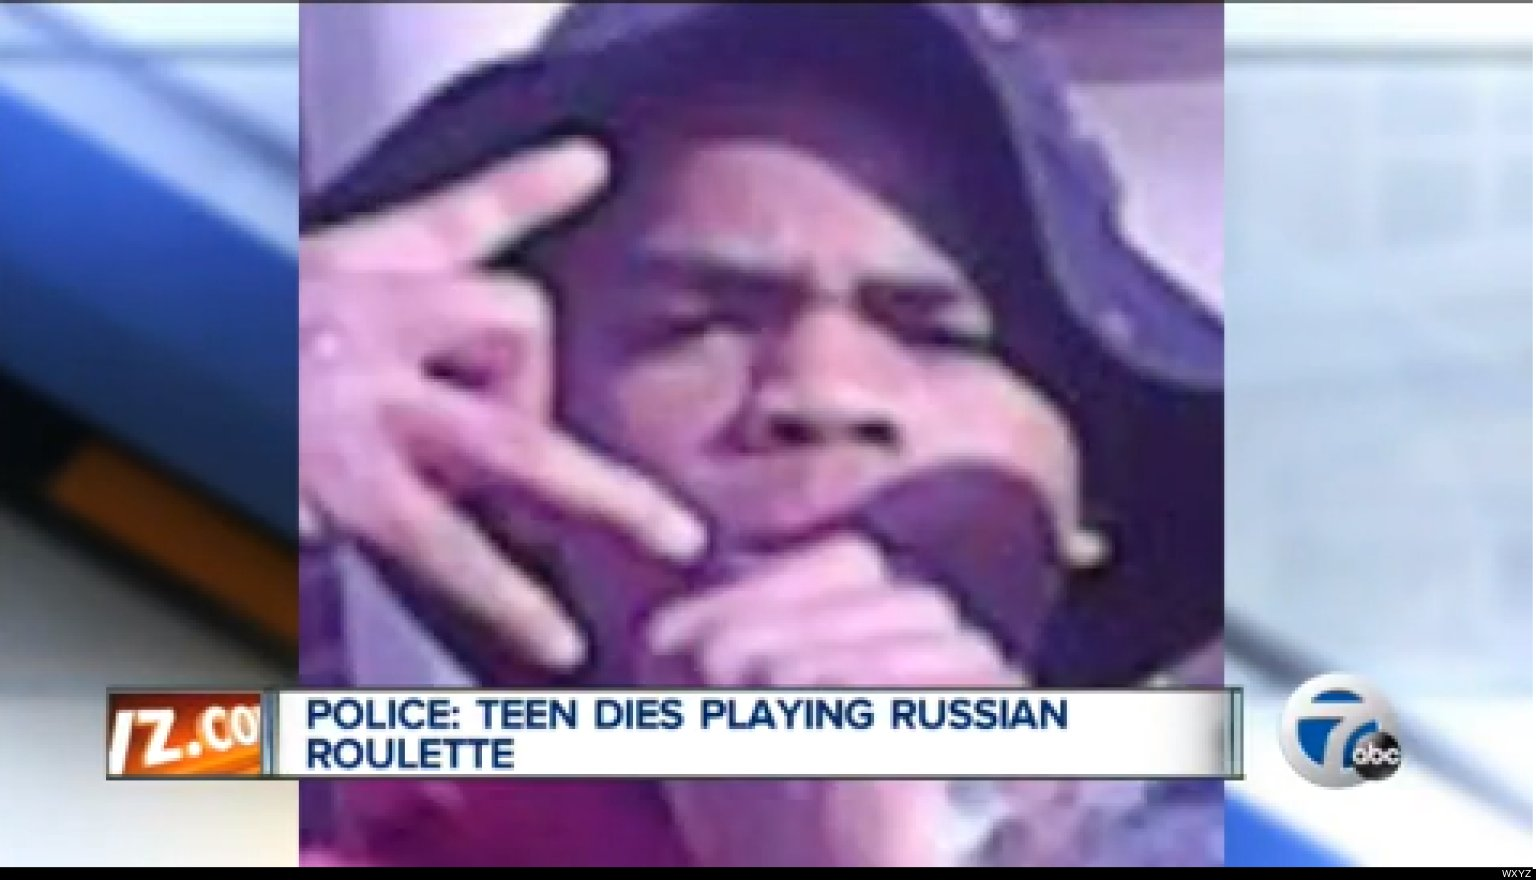 Teen Boy LIkely Shot To Death As Part Of Game, Police Say